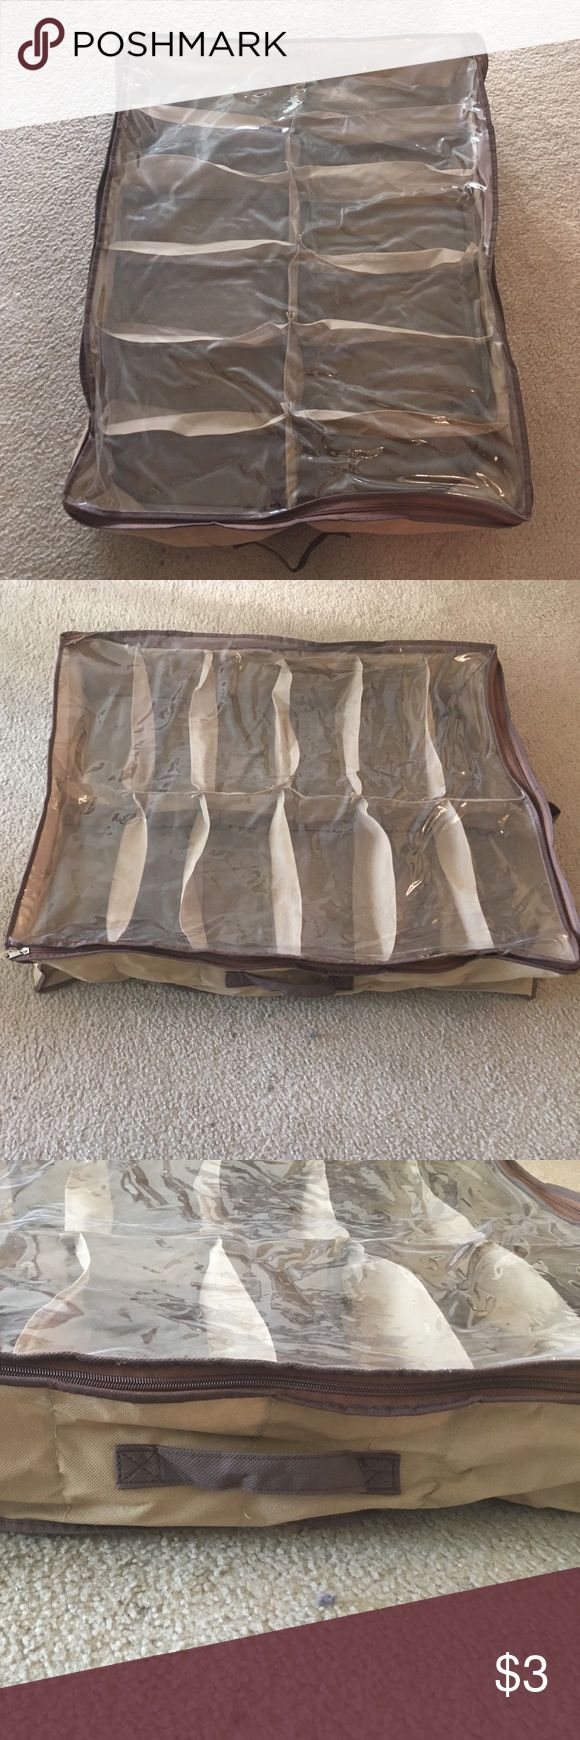 12 spaces shoe rack hanging shoe storage Used but no flaws. Still usable. Accessories